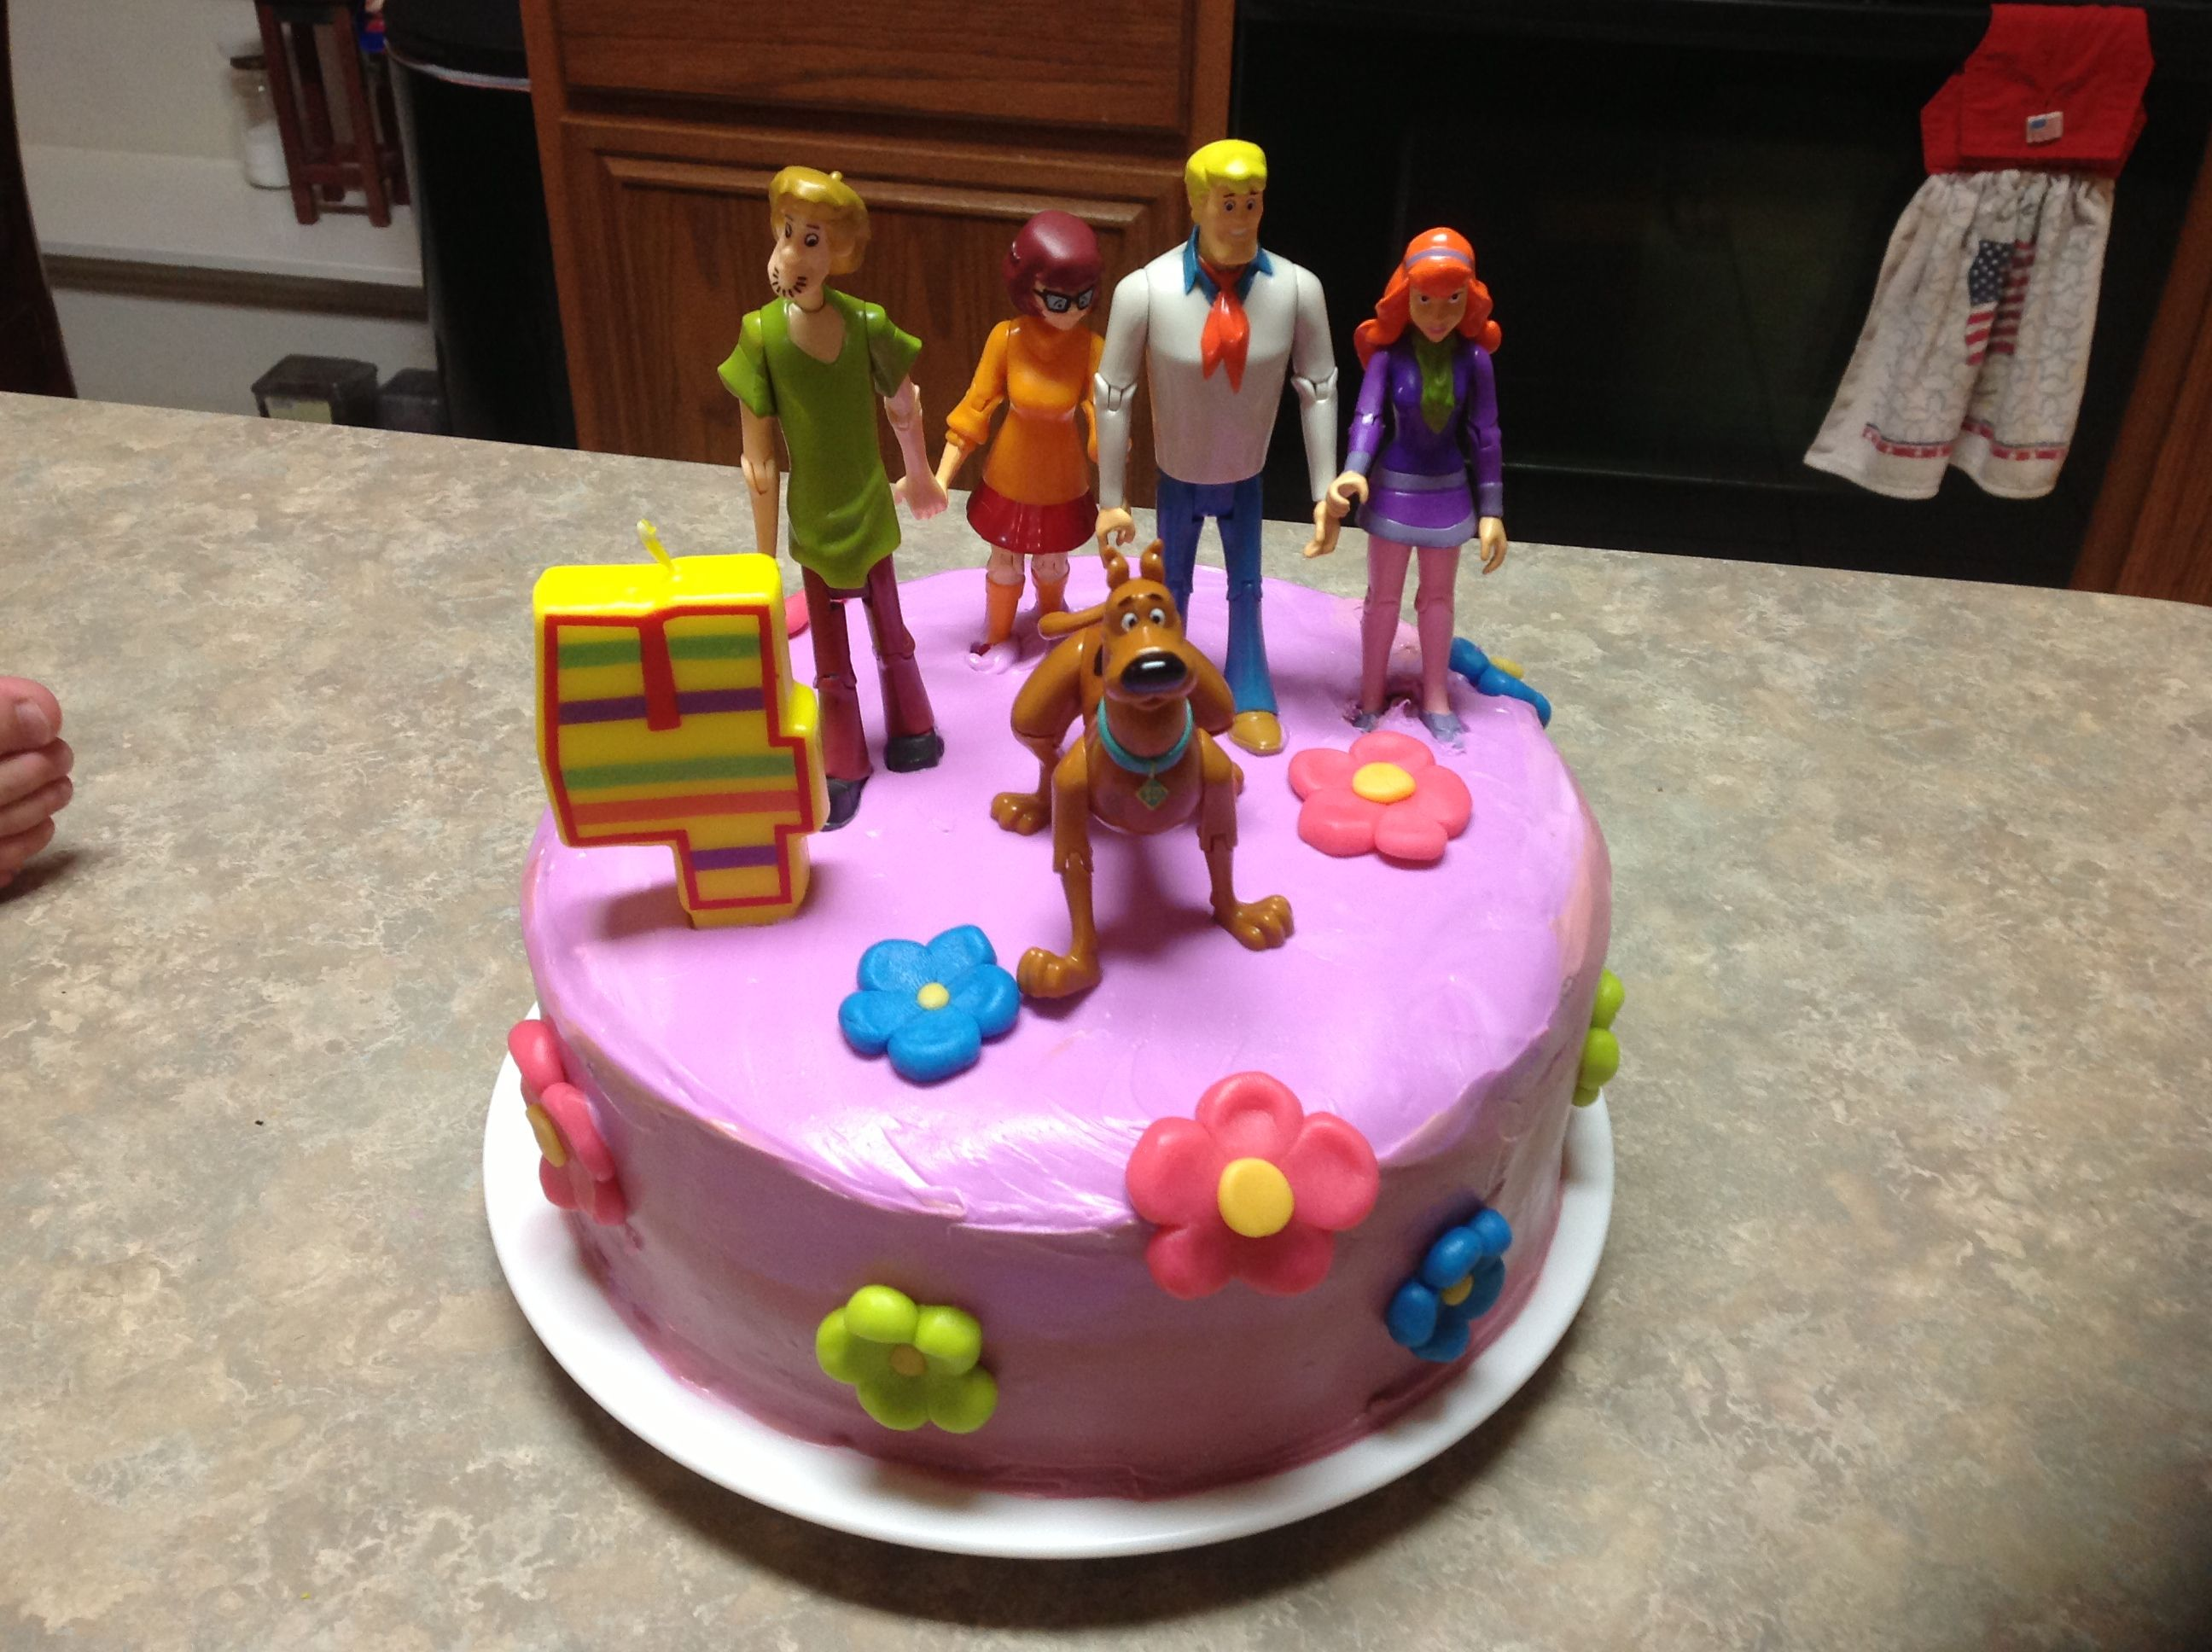 Easy Scooby Doo Cake With Tye Dyed Inside With Images Kids